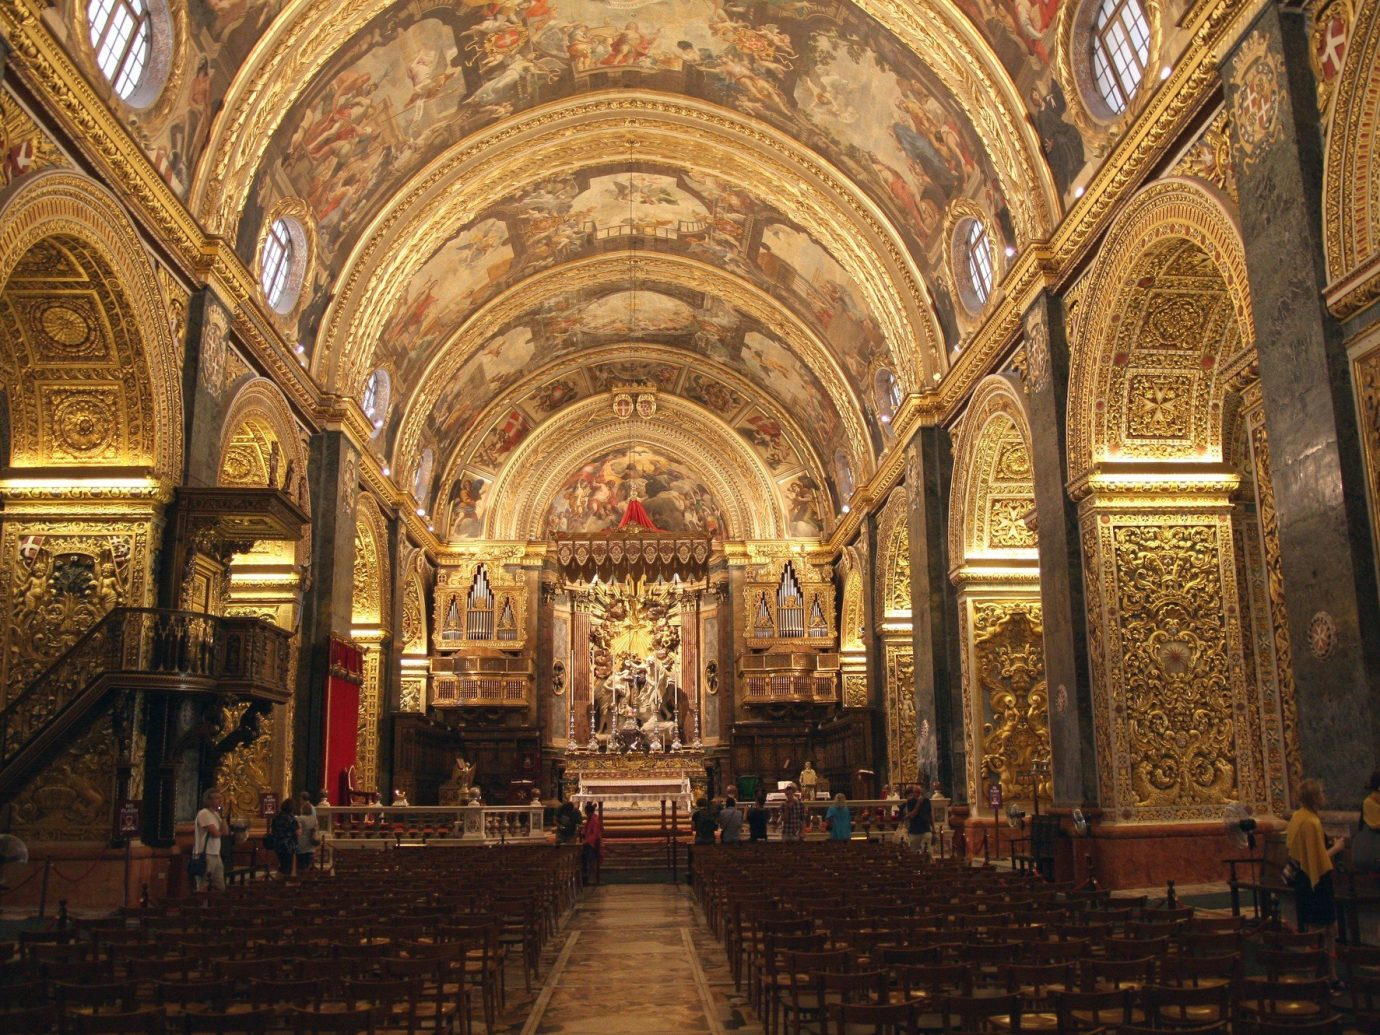 Trip Ideas building place of worship Church cathedral byzantine architecture basilica chapel monastery synagogue palace stone